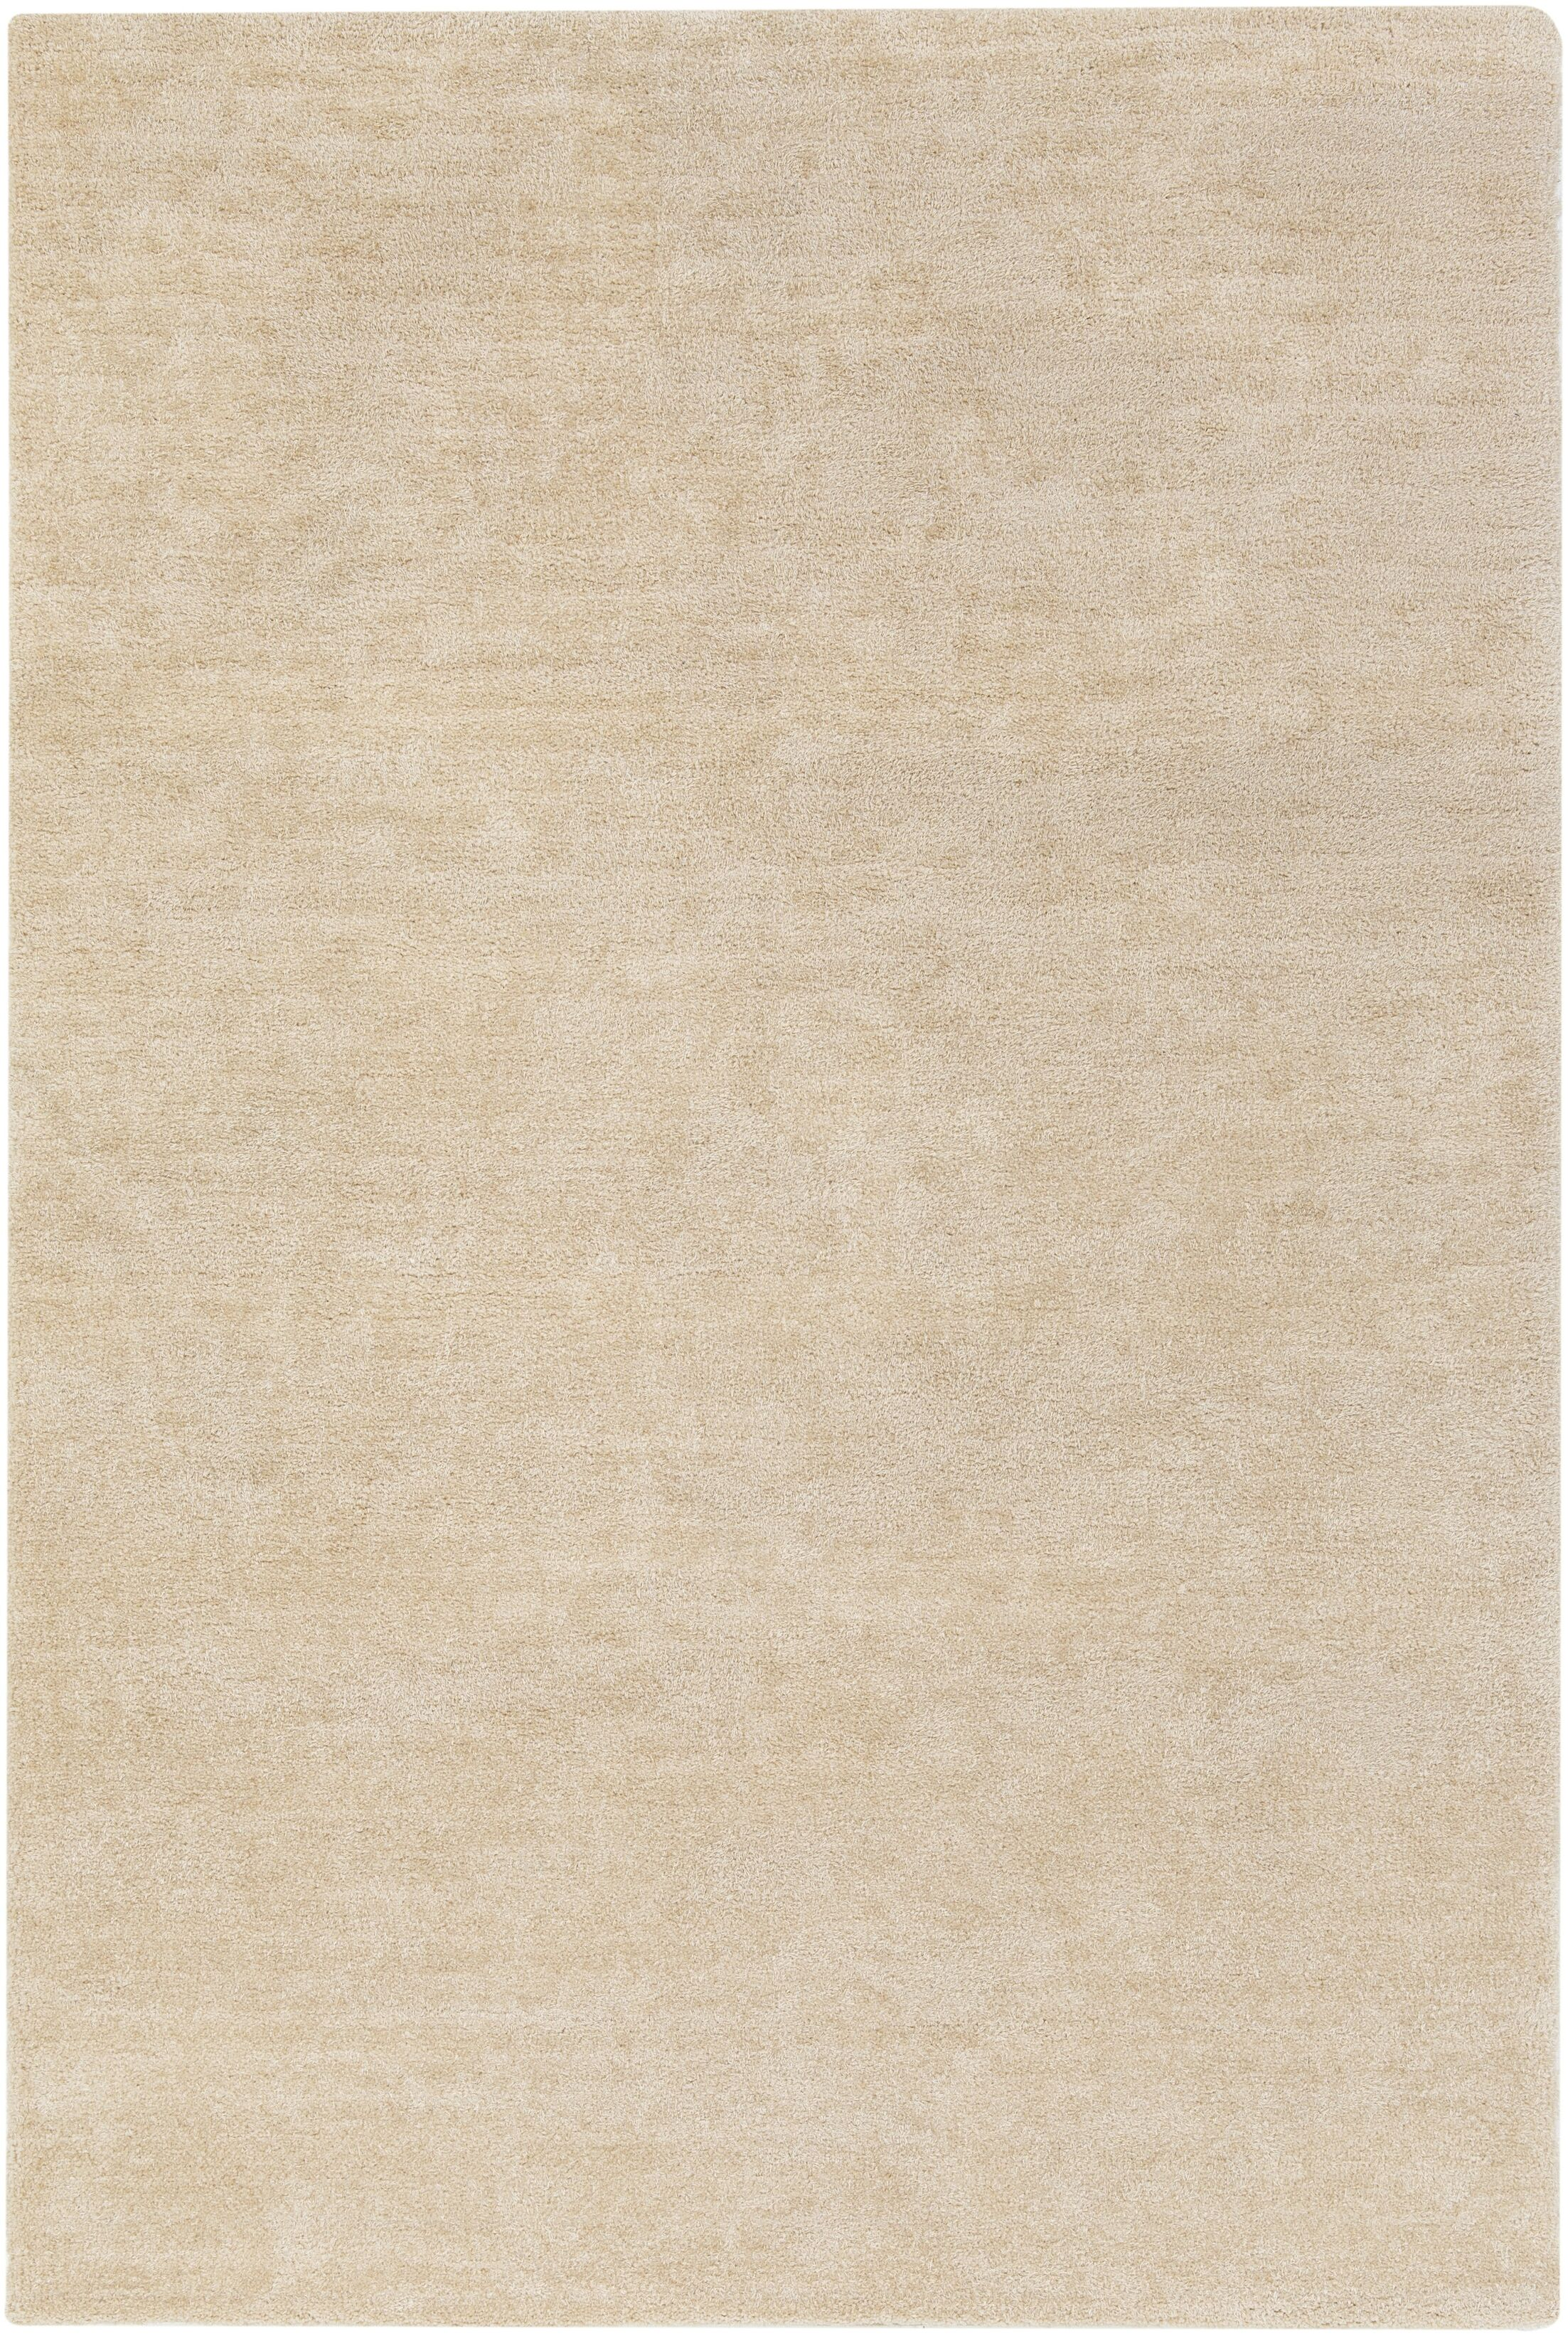 Eckman Beige Area Rug Rug Size: Rectangle 8' x 11'